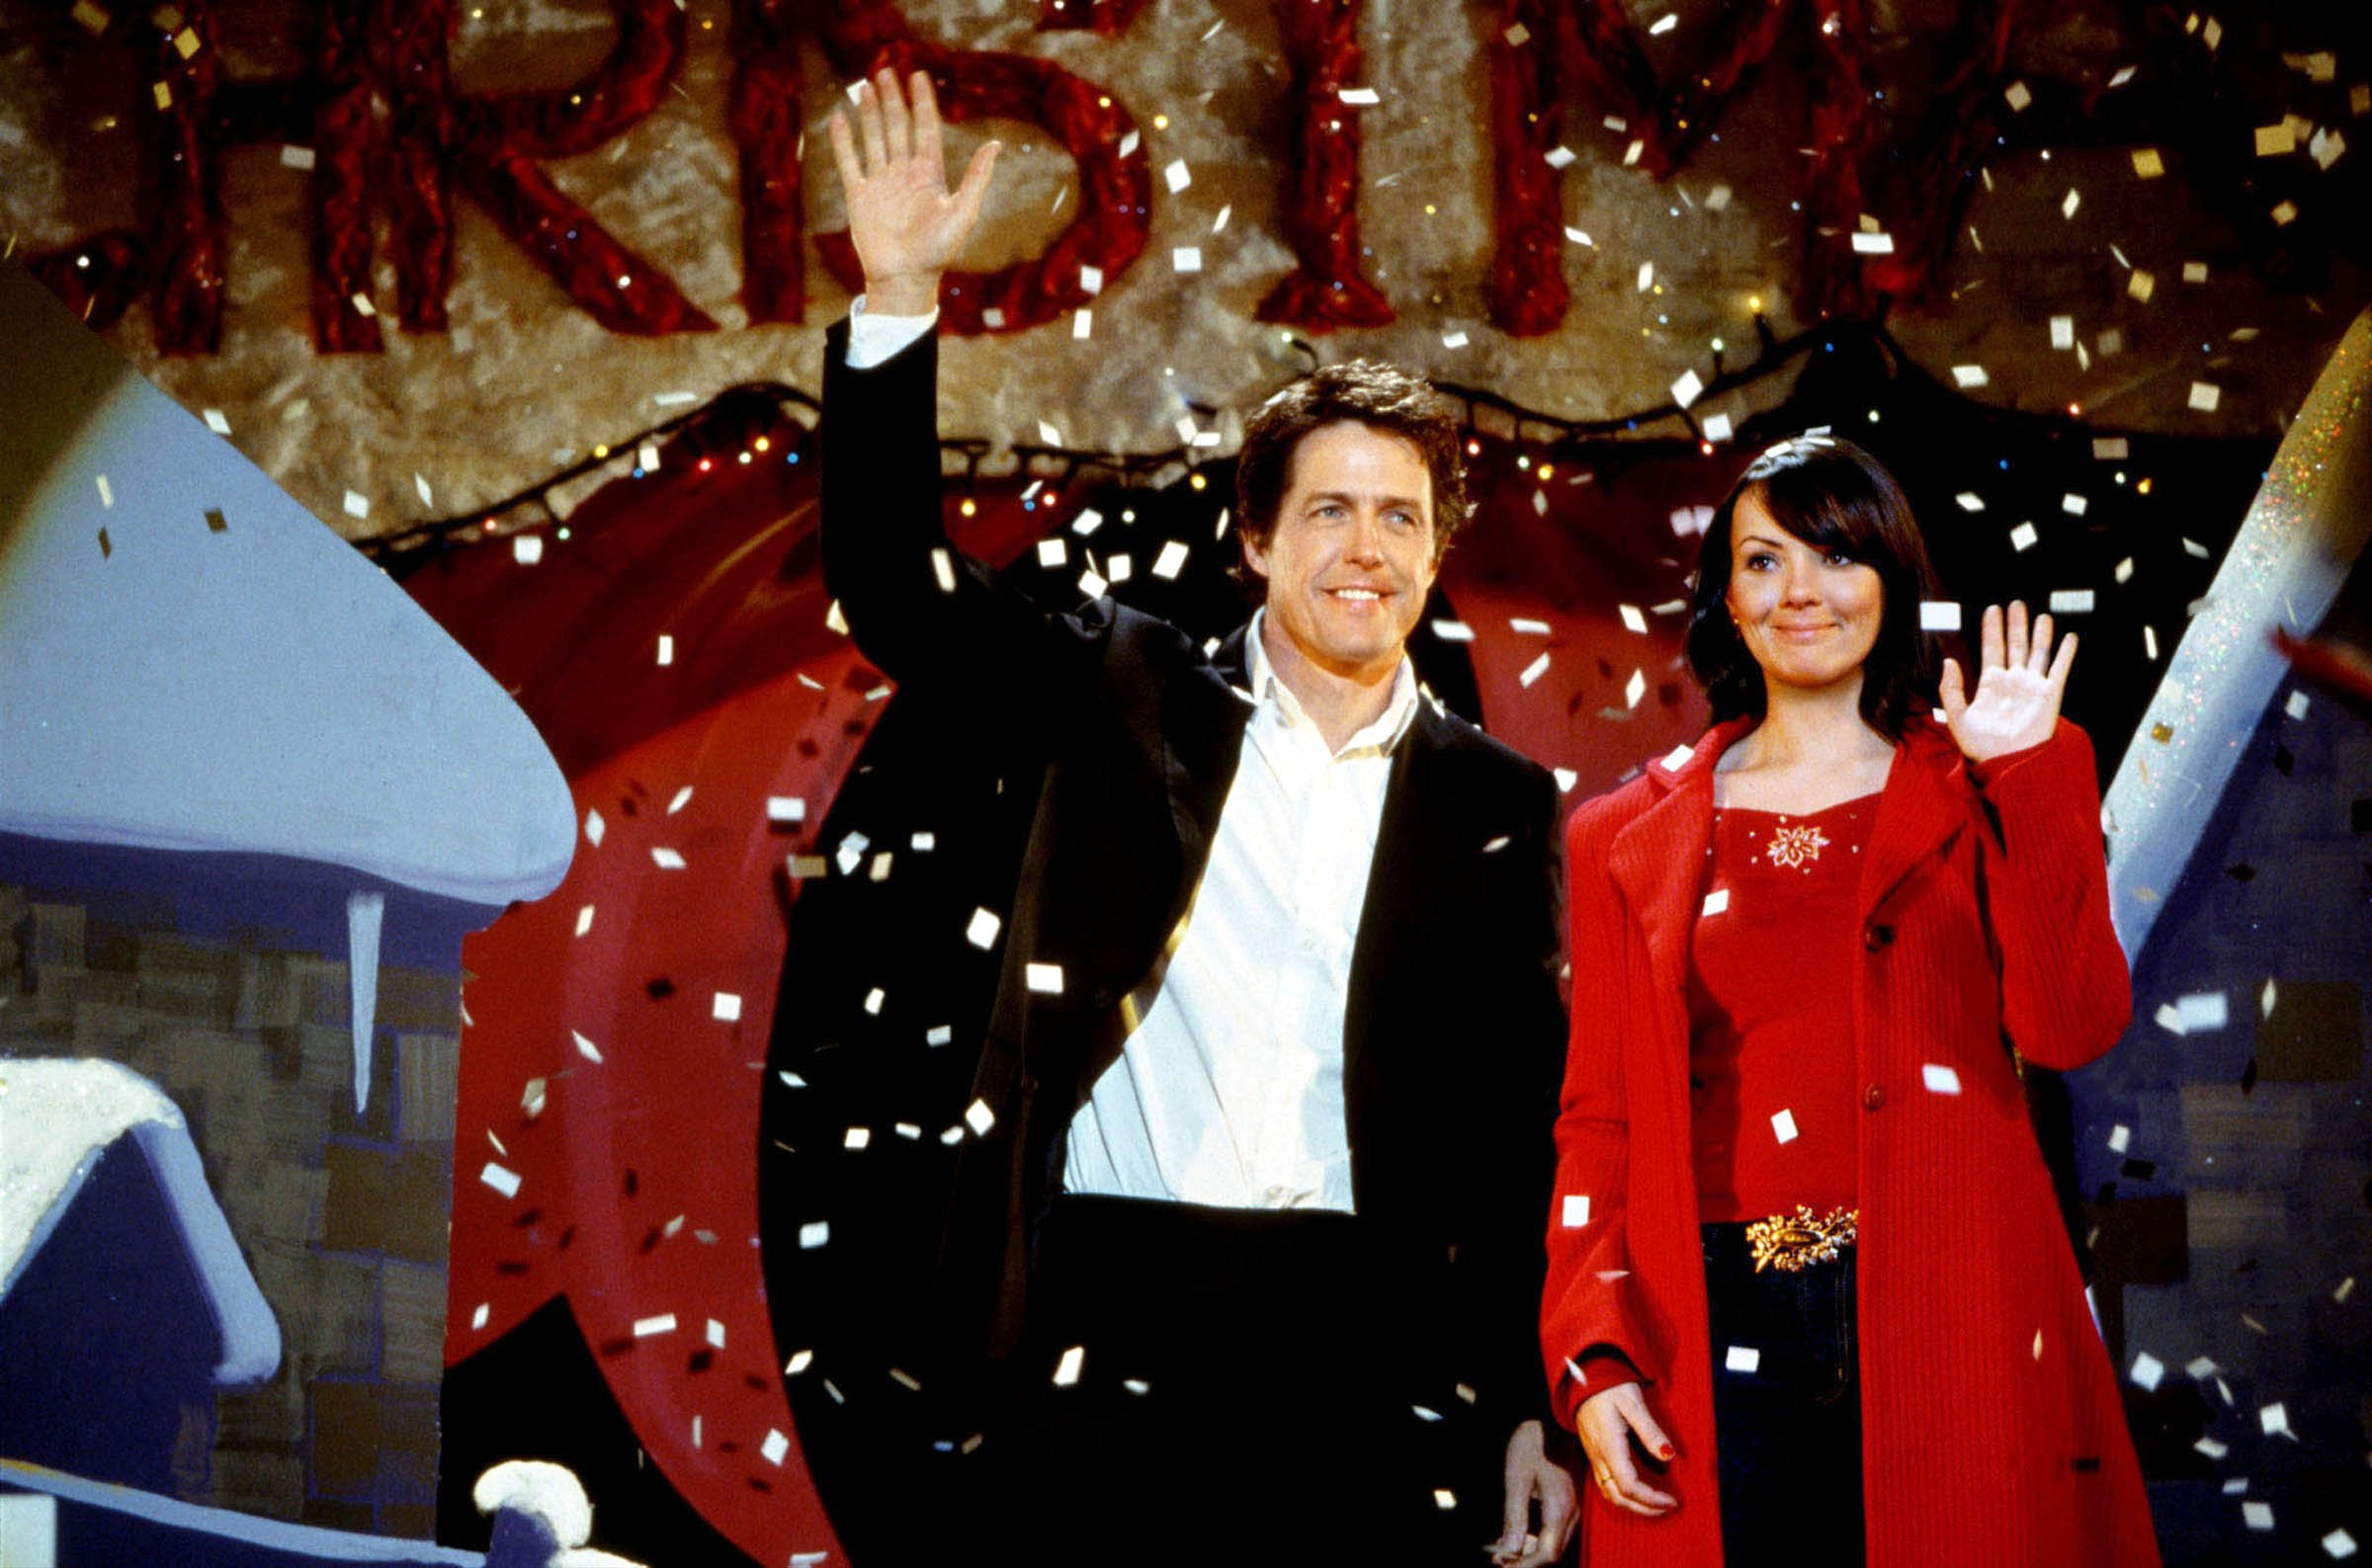 Love Actually on TV in July AGAIN is not what anybody wants